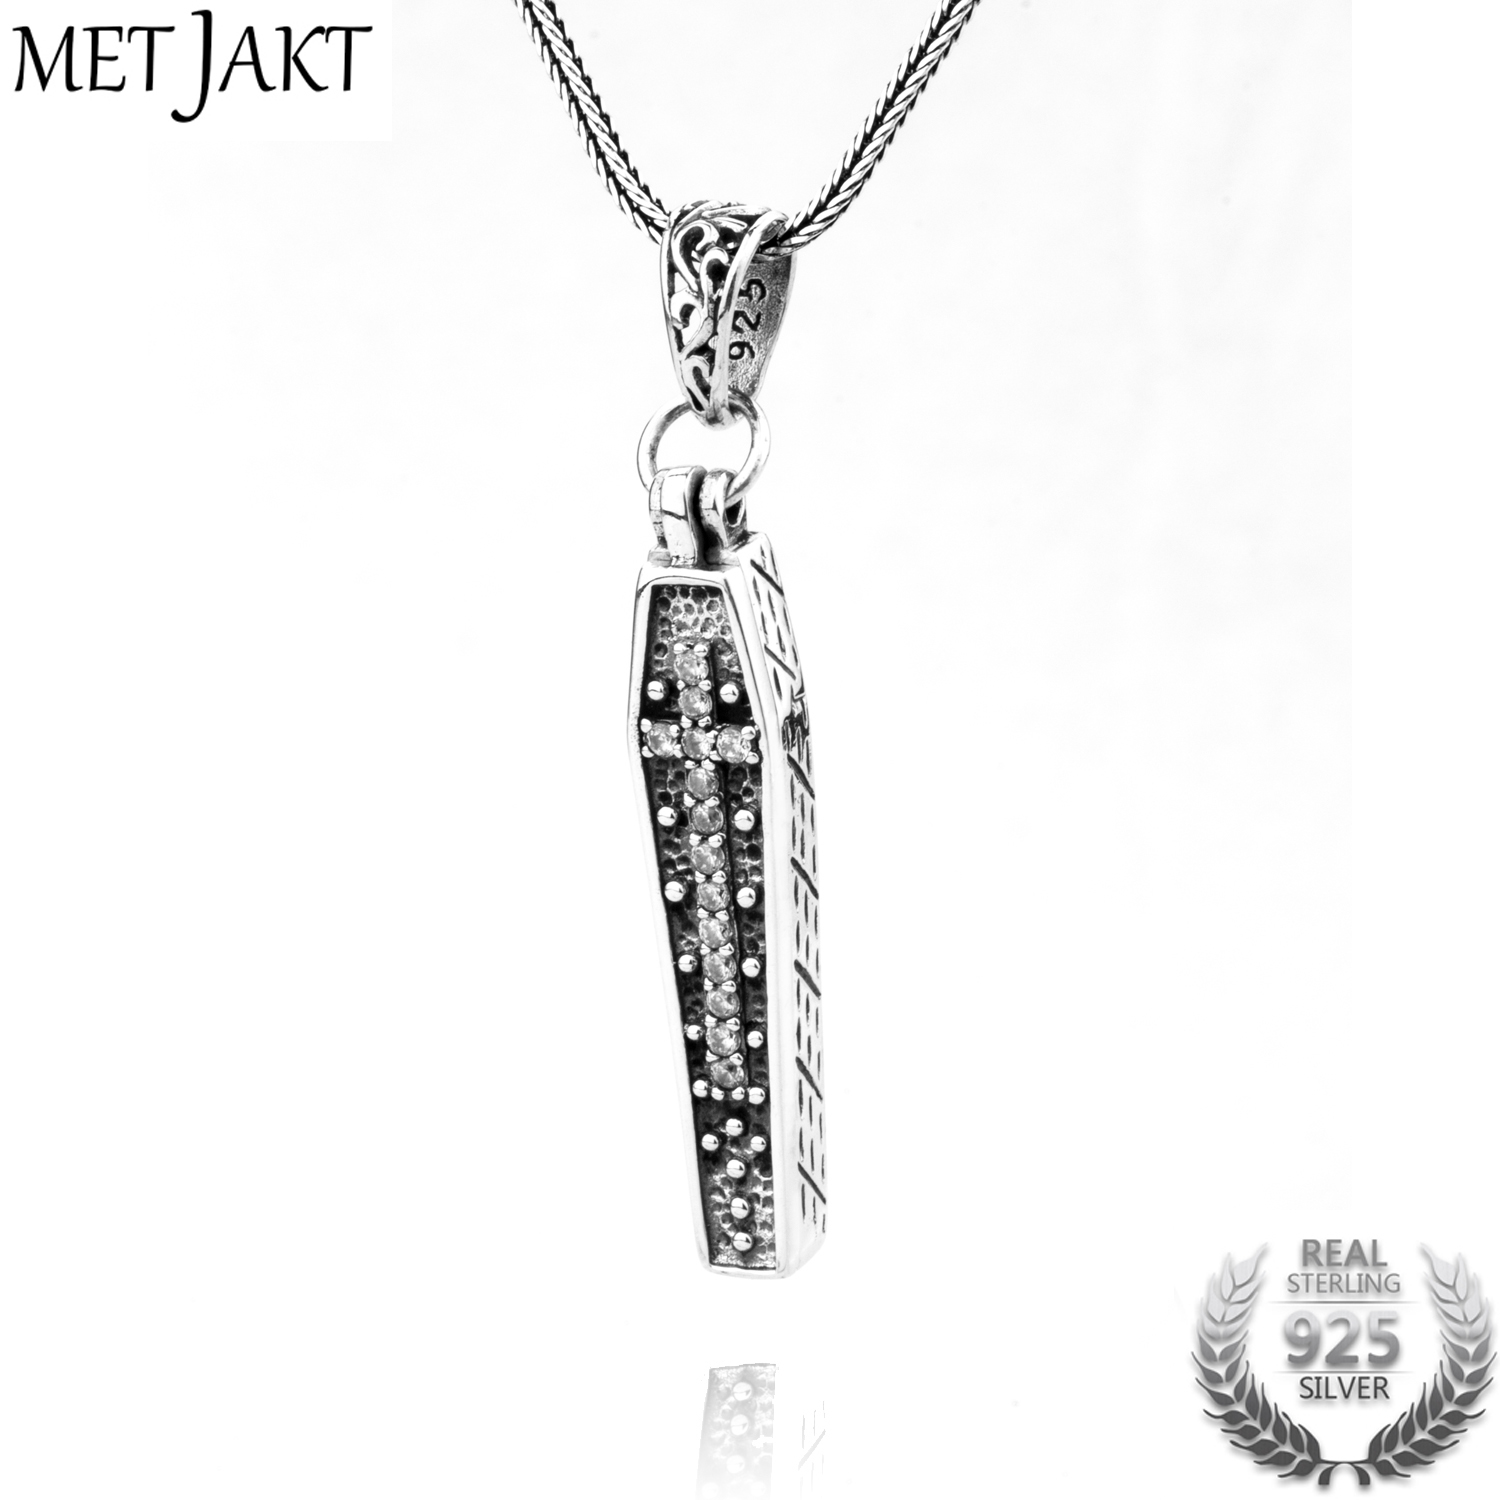 MetJakt 925 Sterling Silver Coffin Pendant with Skeleton Men's Gothic Punk Cross Pendant Necklace and Snake Chain metjakt punk buddhism 925 sterling silver peace pendant necklace and snake chain unisex exorcise evil spirits jewelry